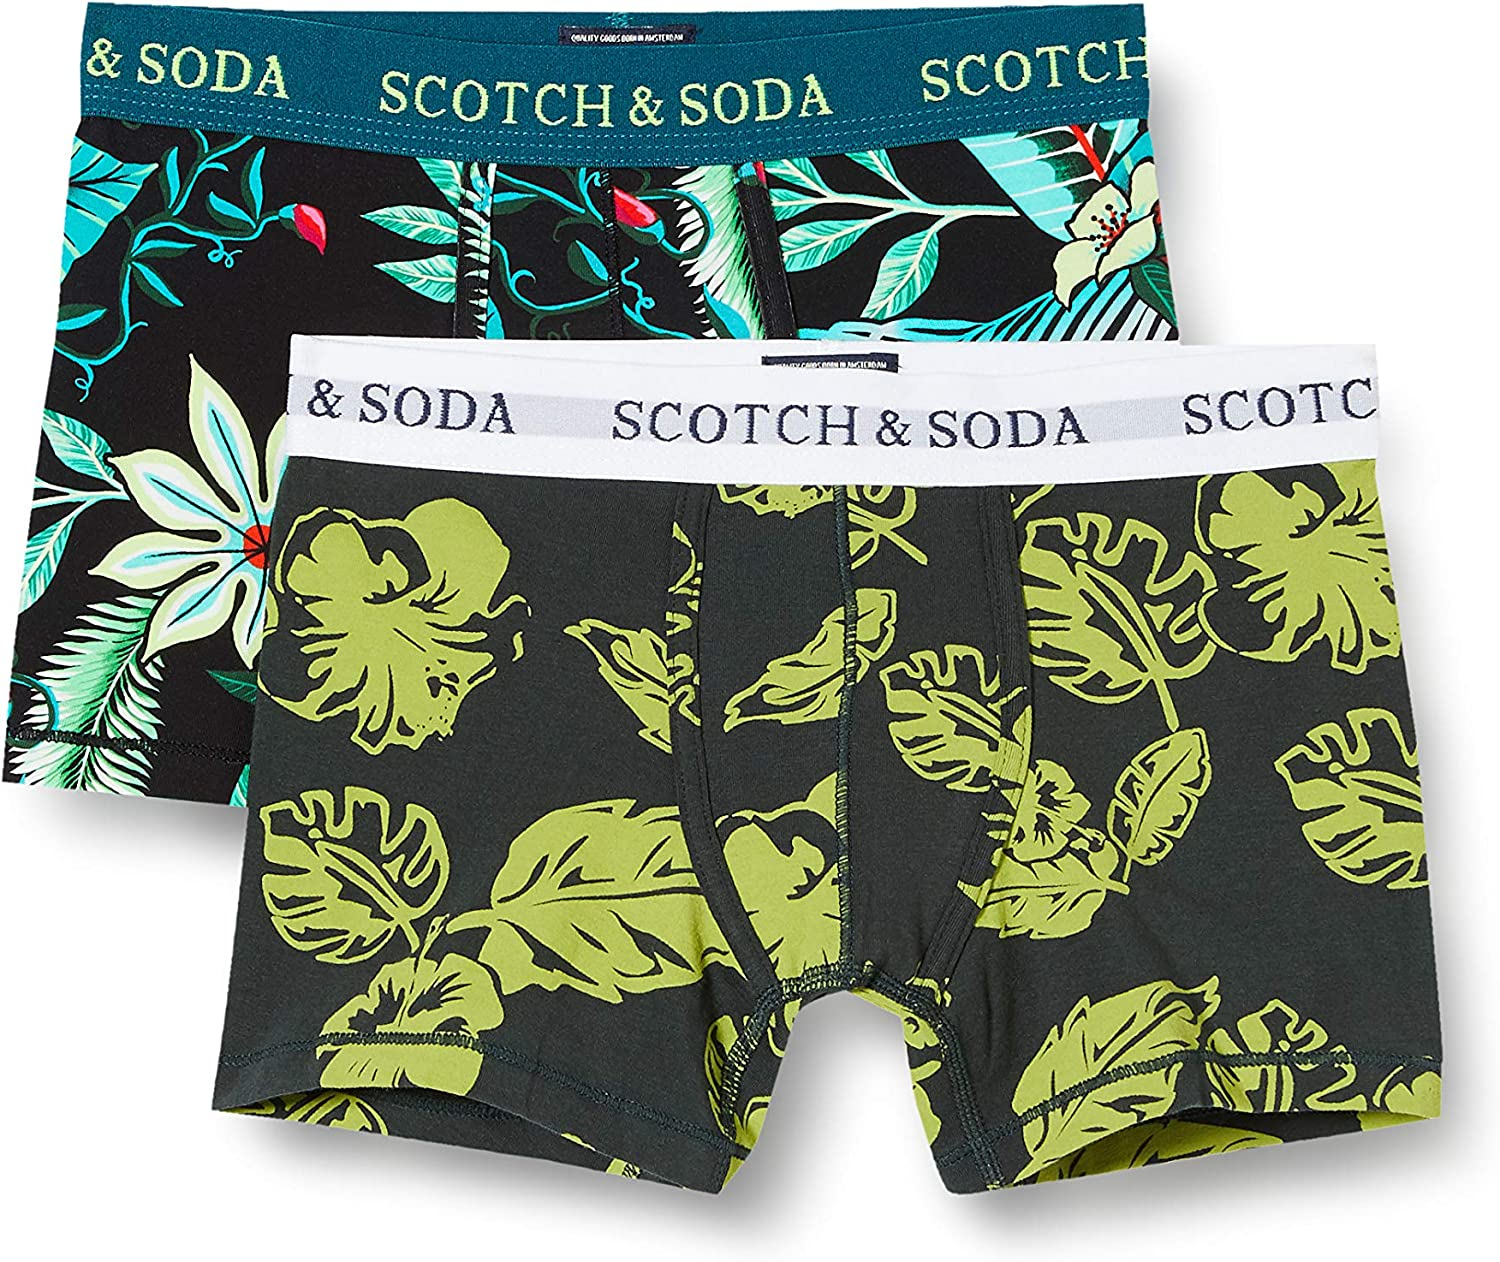 Scotch /& Soda Boys All-over Printed Duo Pack Boxershorts Boxer Shorts